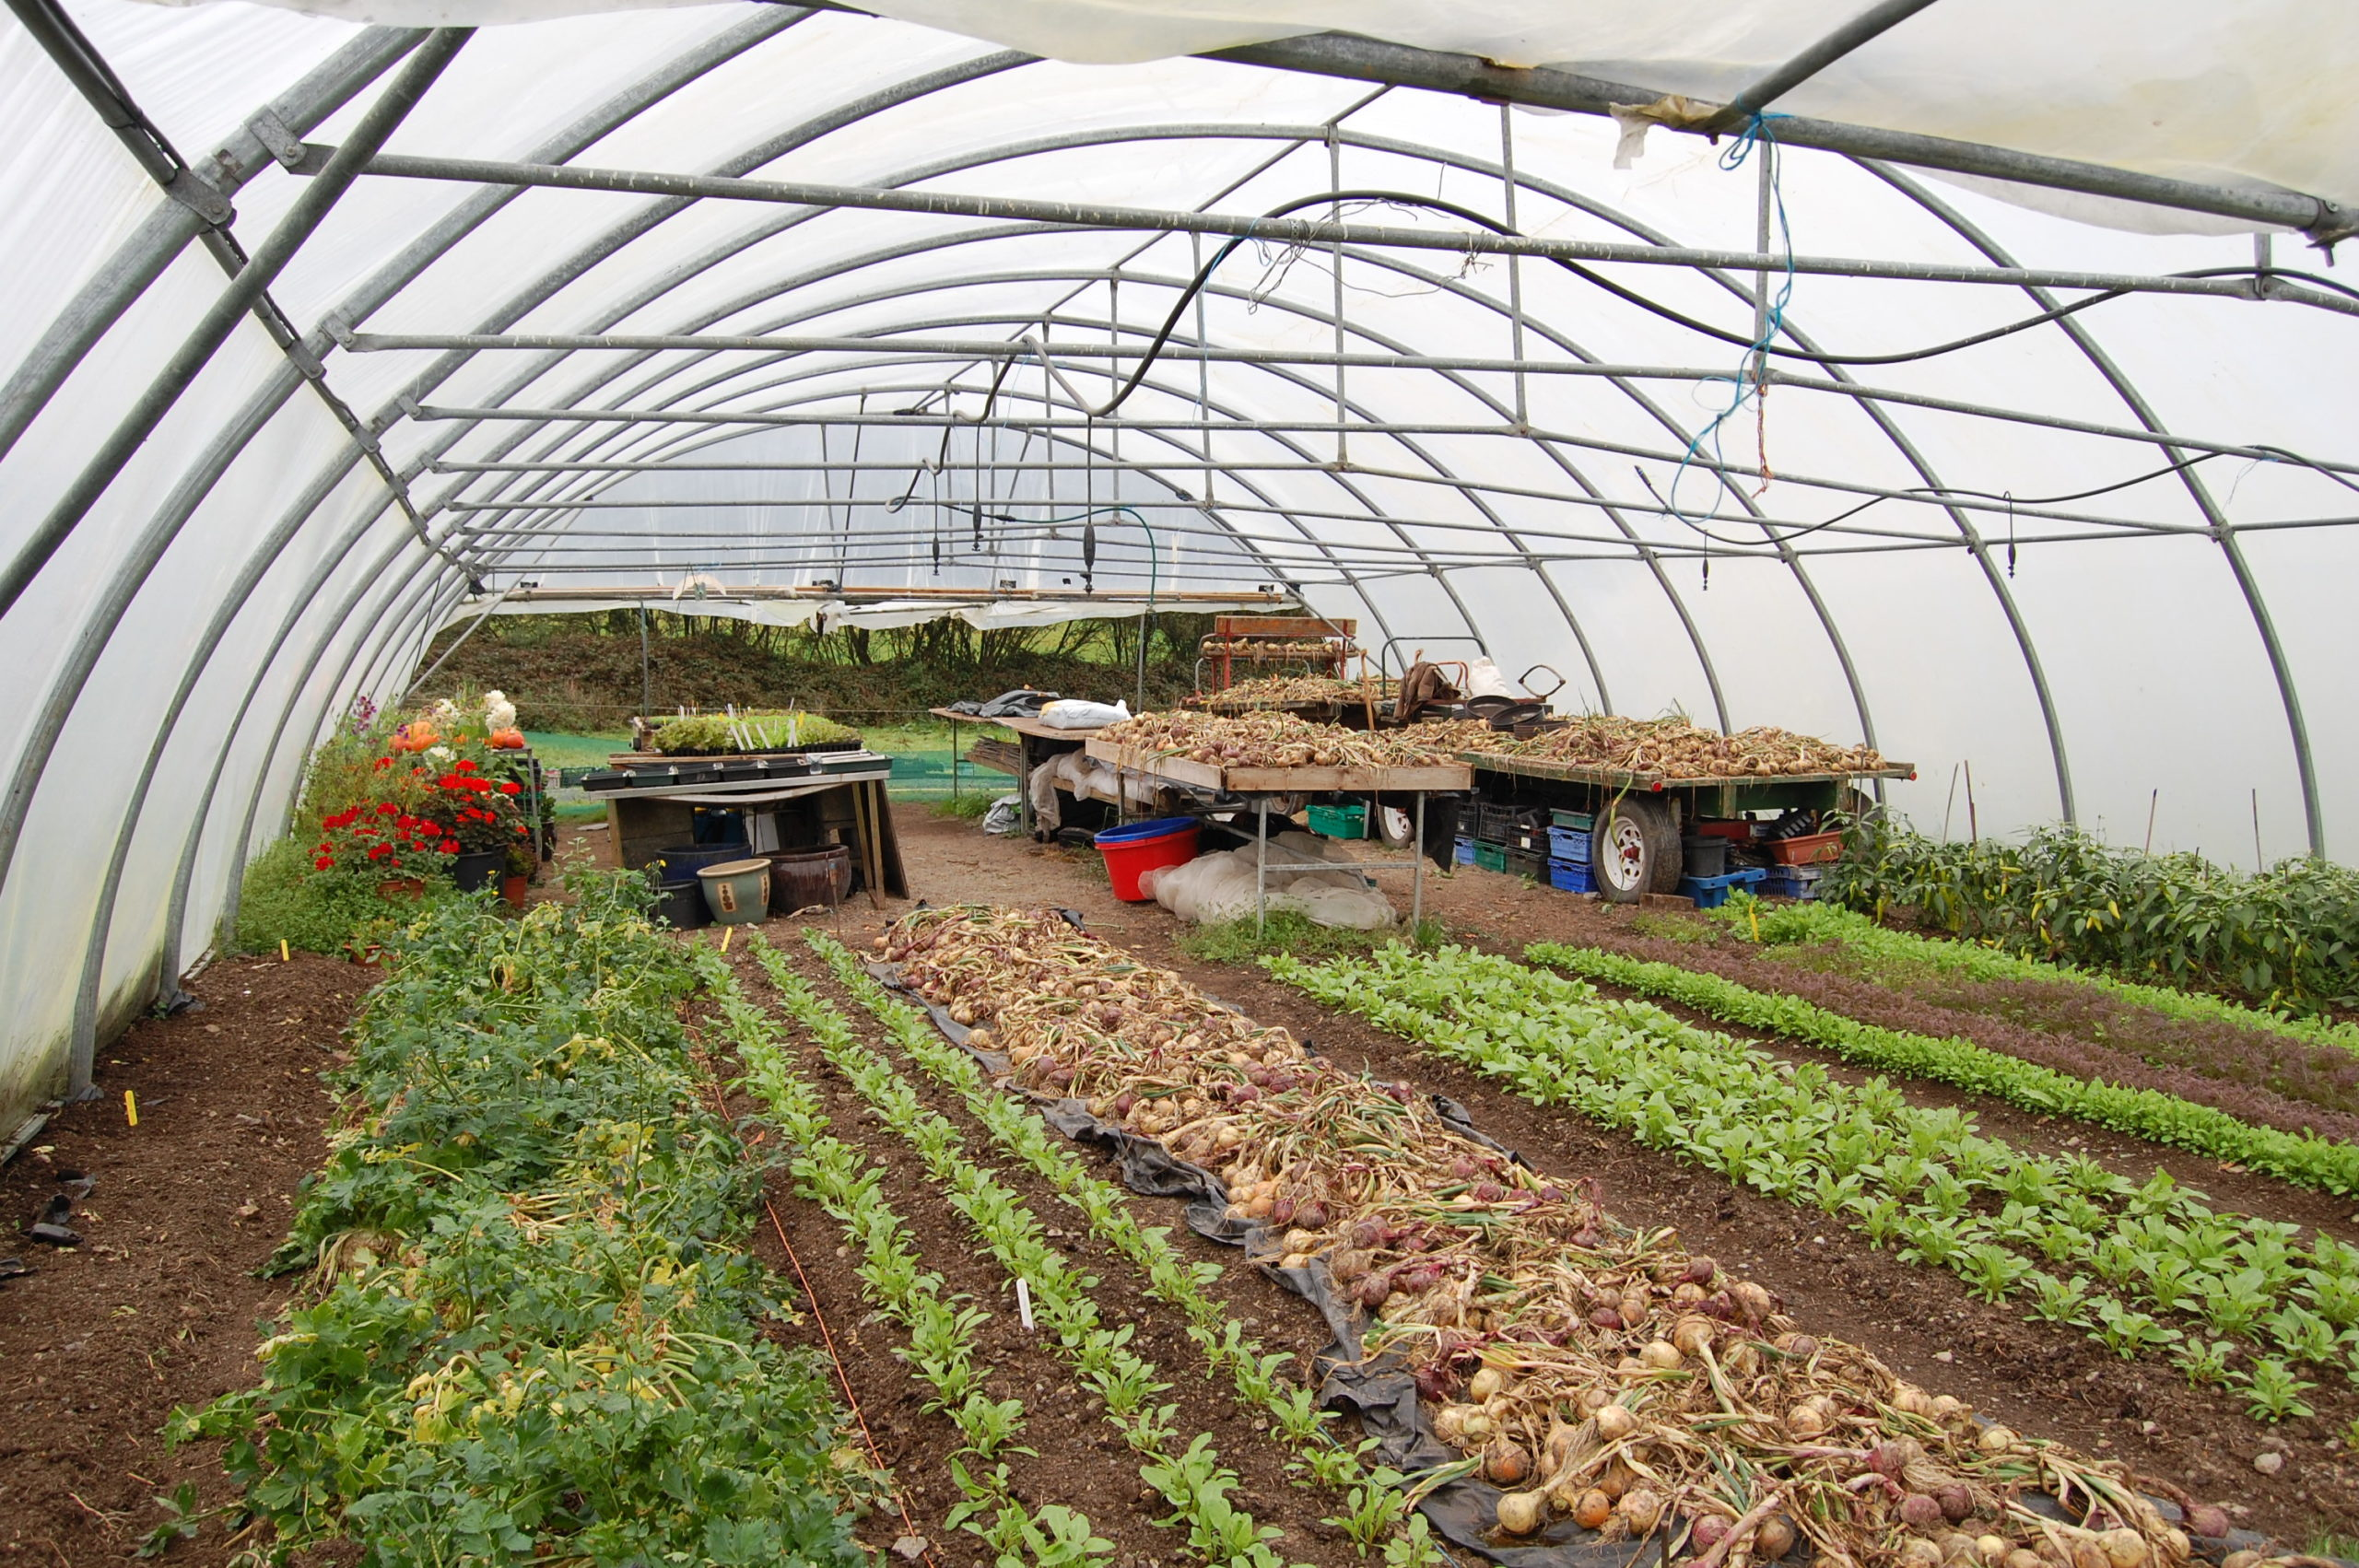 Certificate in Organic Horticulture (Distance Learning) 2020 provided by NOTS.ie